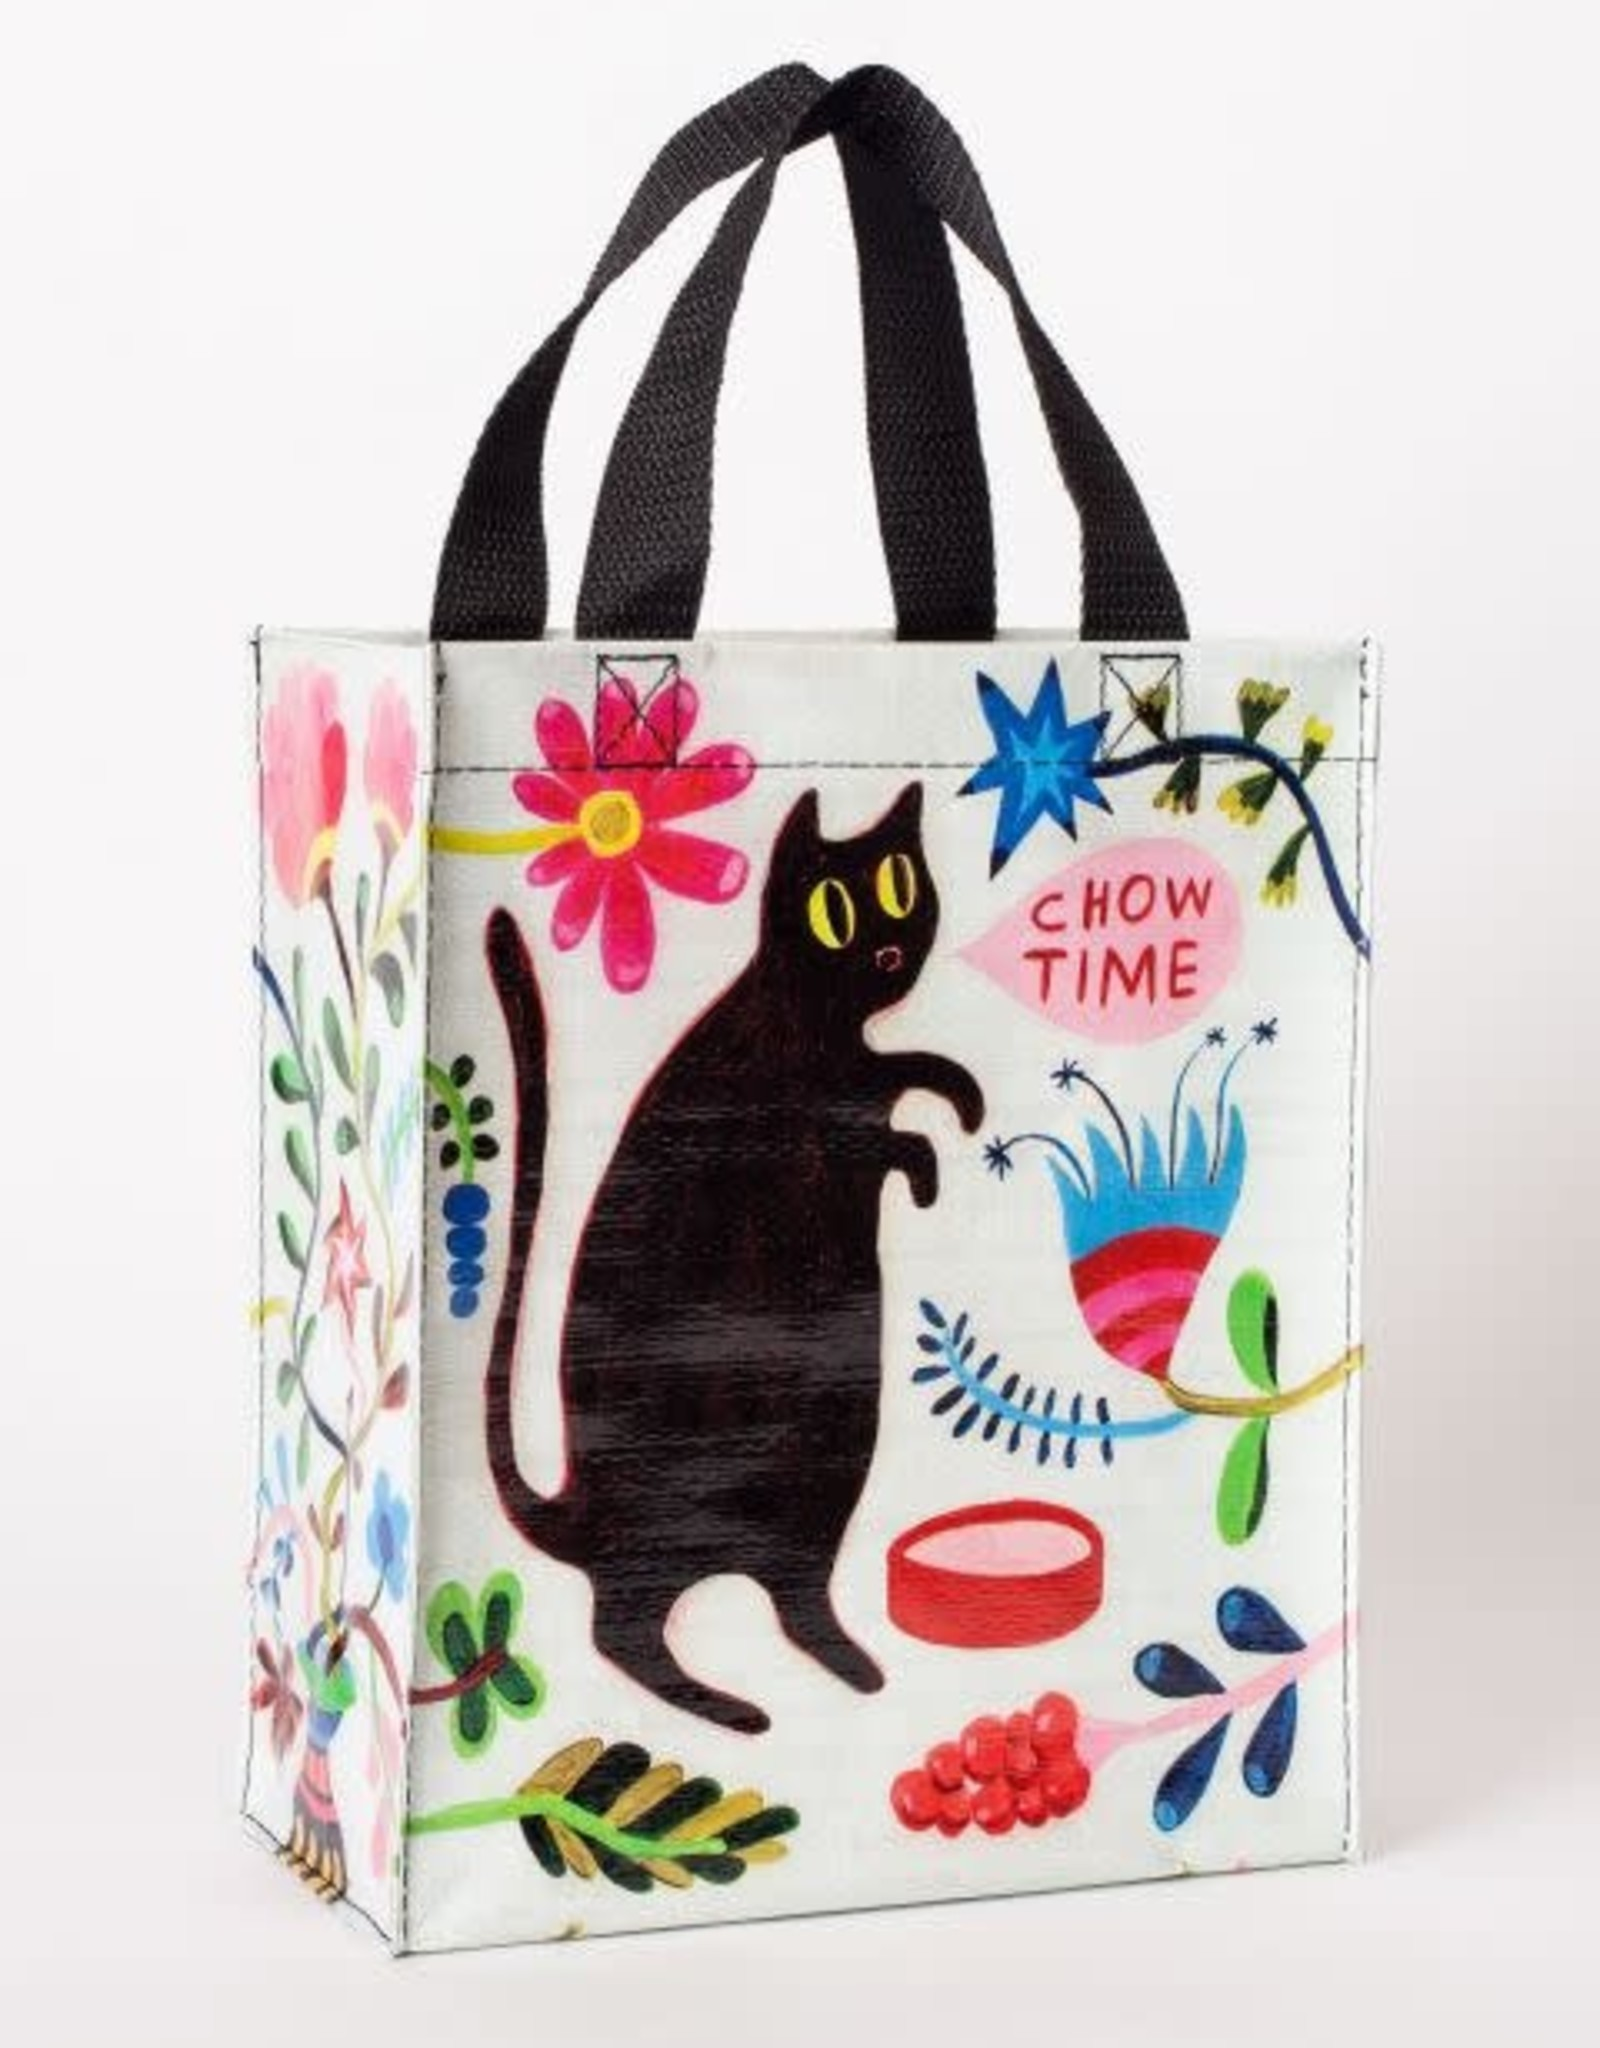 Chow Time Handy Tote